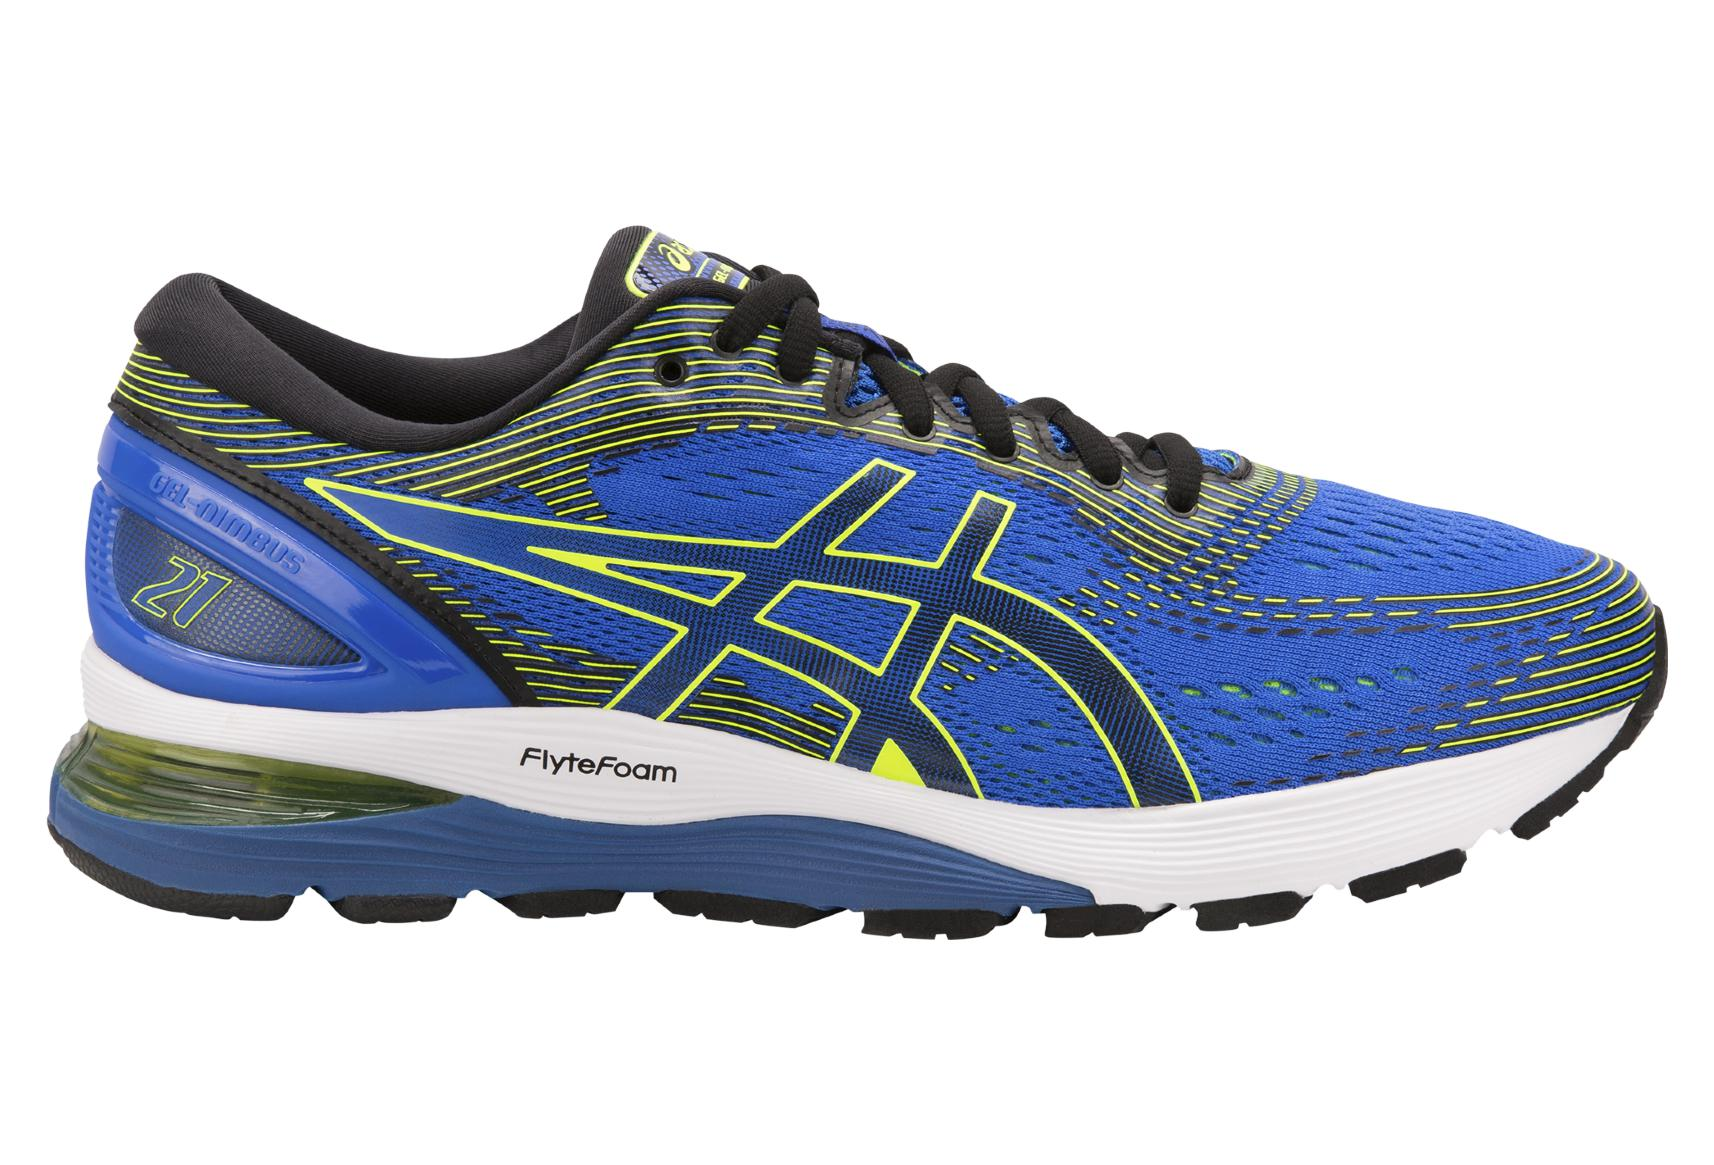 Zapatillas Asics Run Gel Nimbus 21 Azul Verde